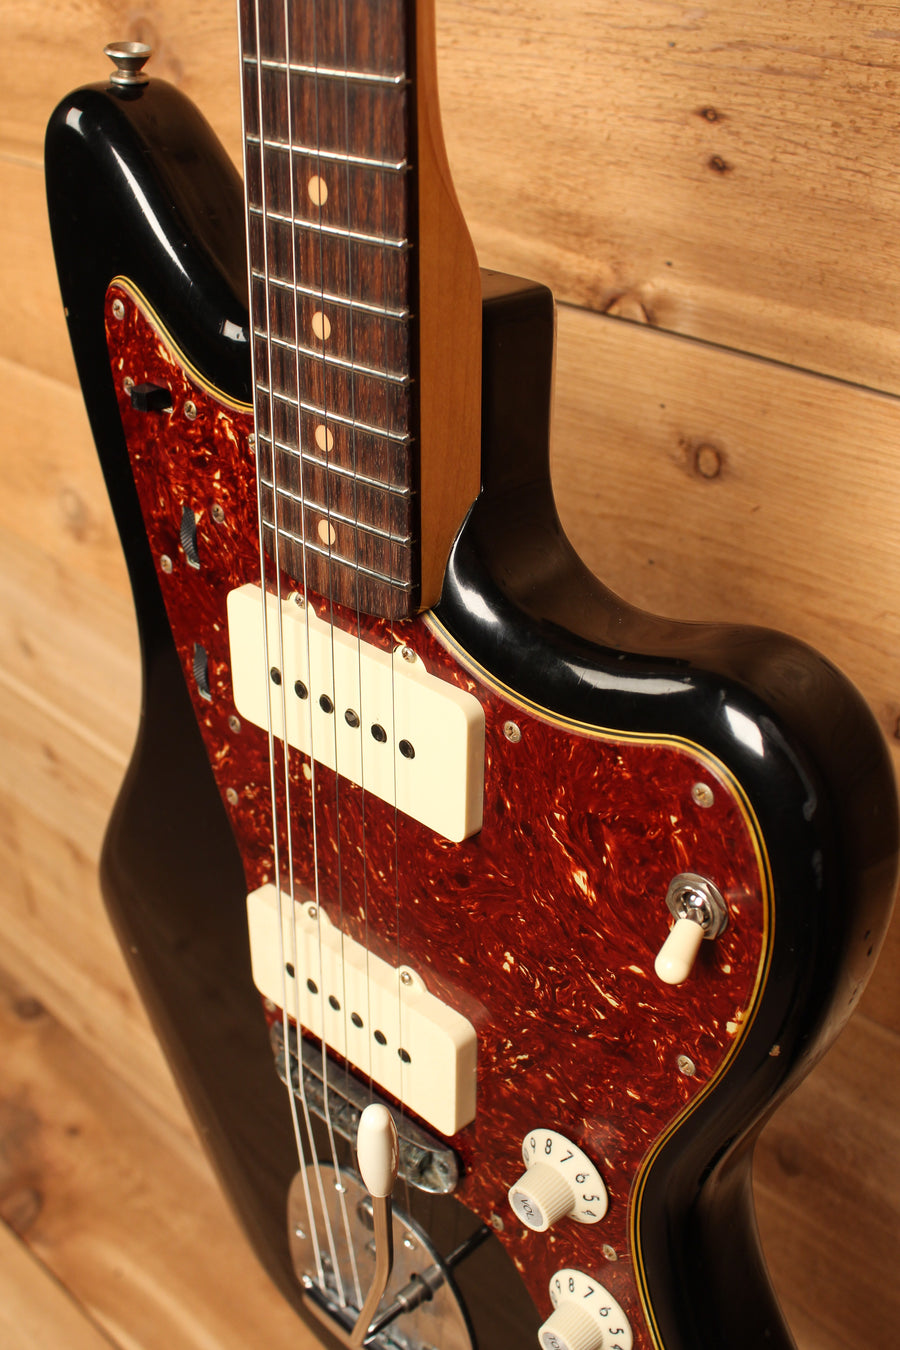 Fender Custom Shop 1959 Journeyman Relic Jazzmaster Aged Black Finish ID-11144 - Artisan Guitars